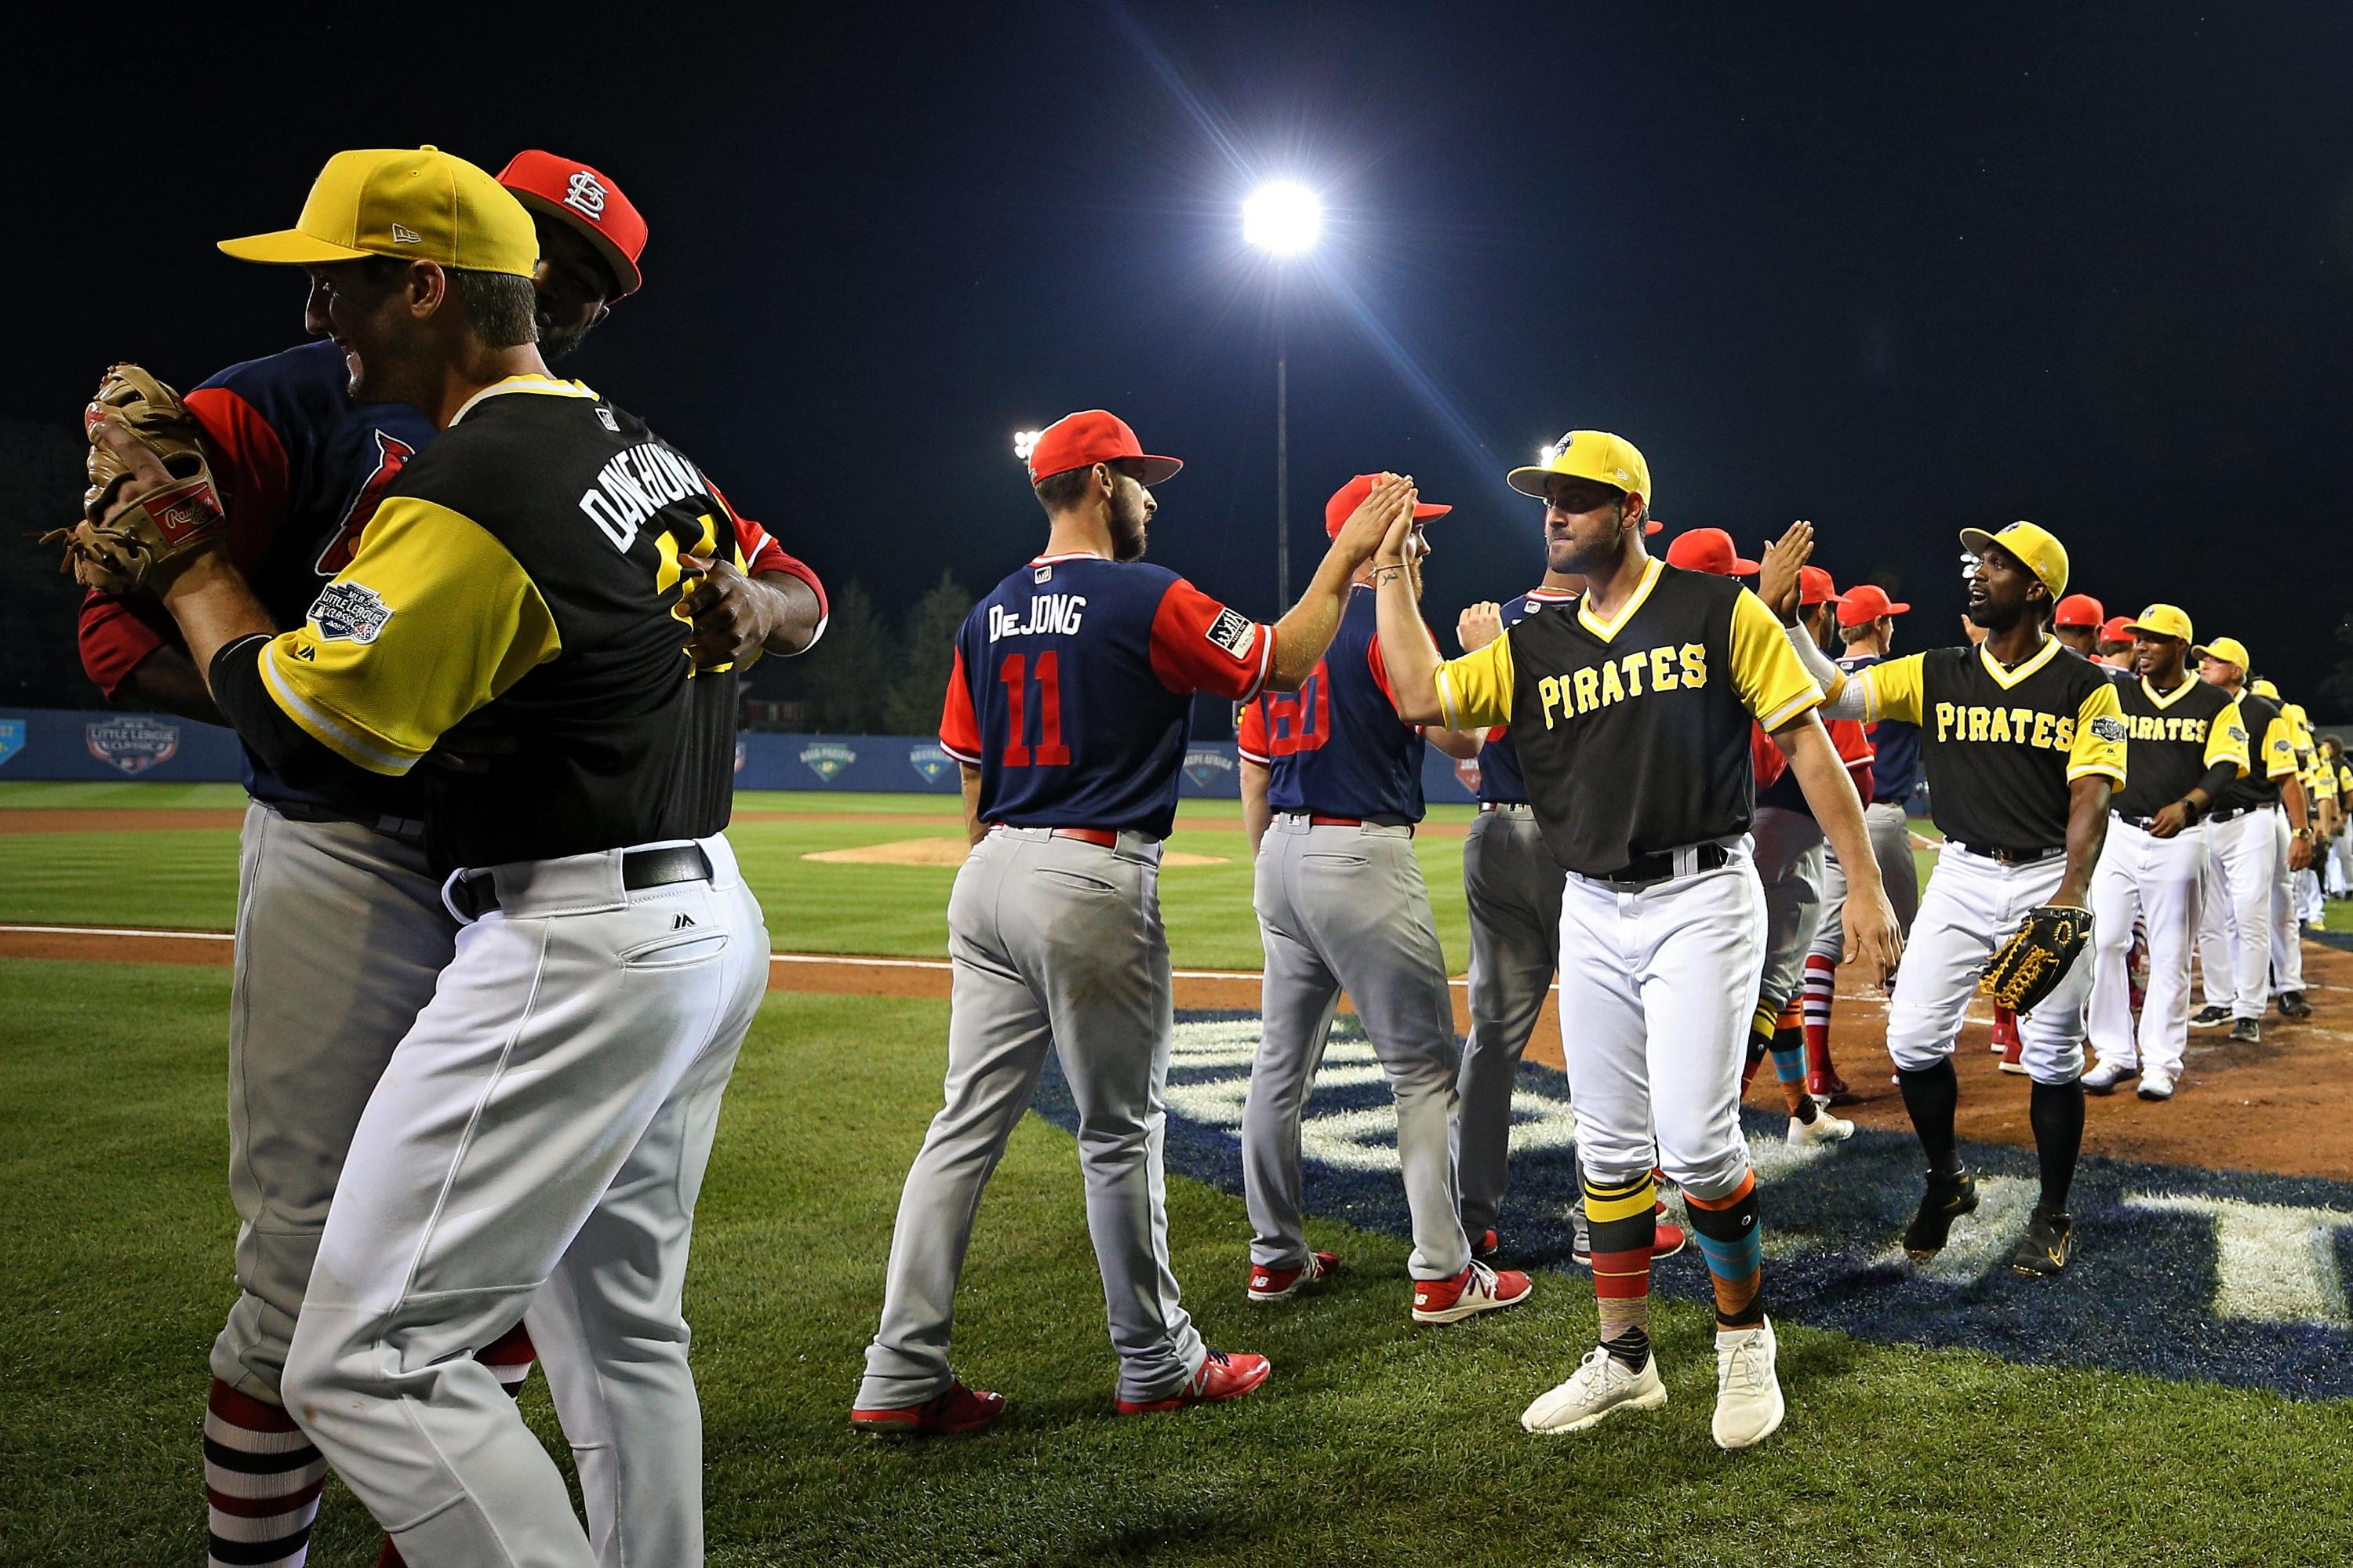 Roundtable: What Little League traditions should be adopted by MLB?